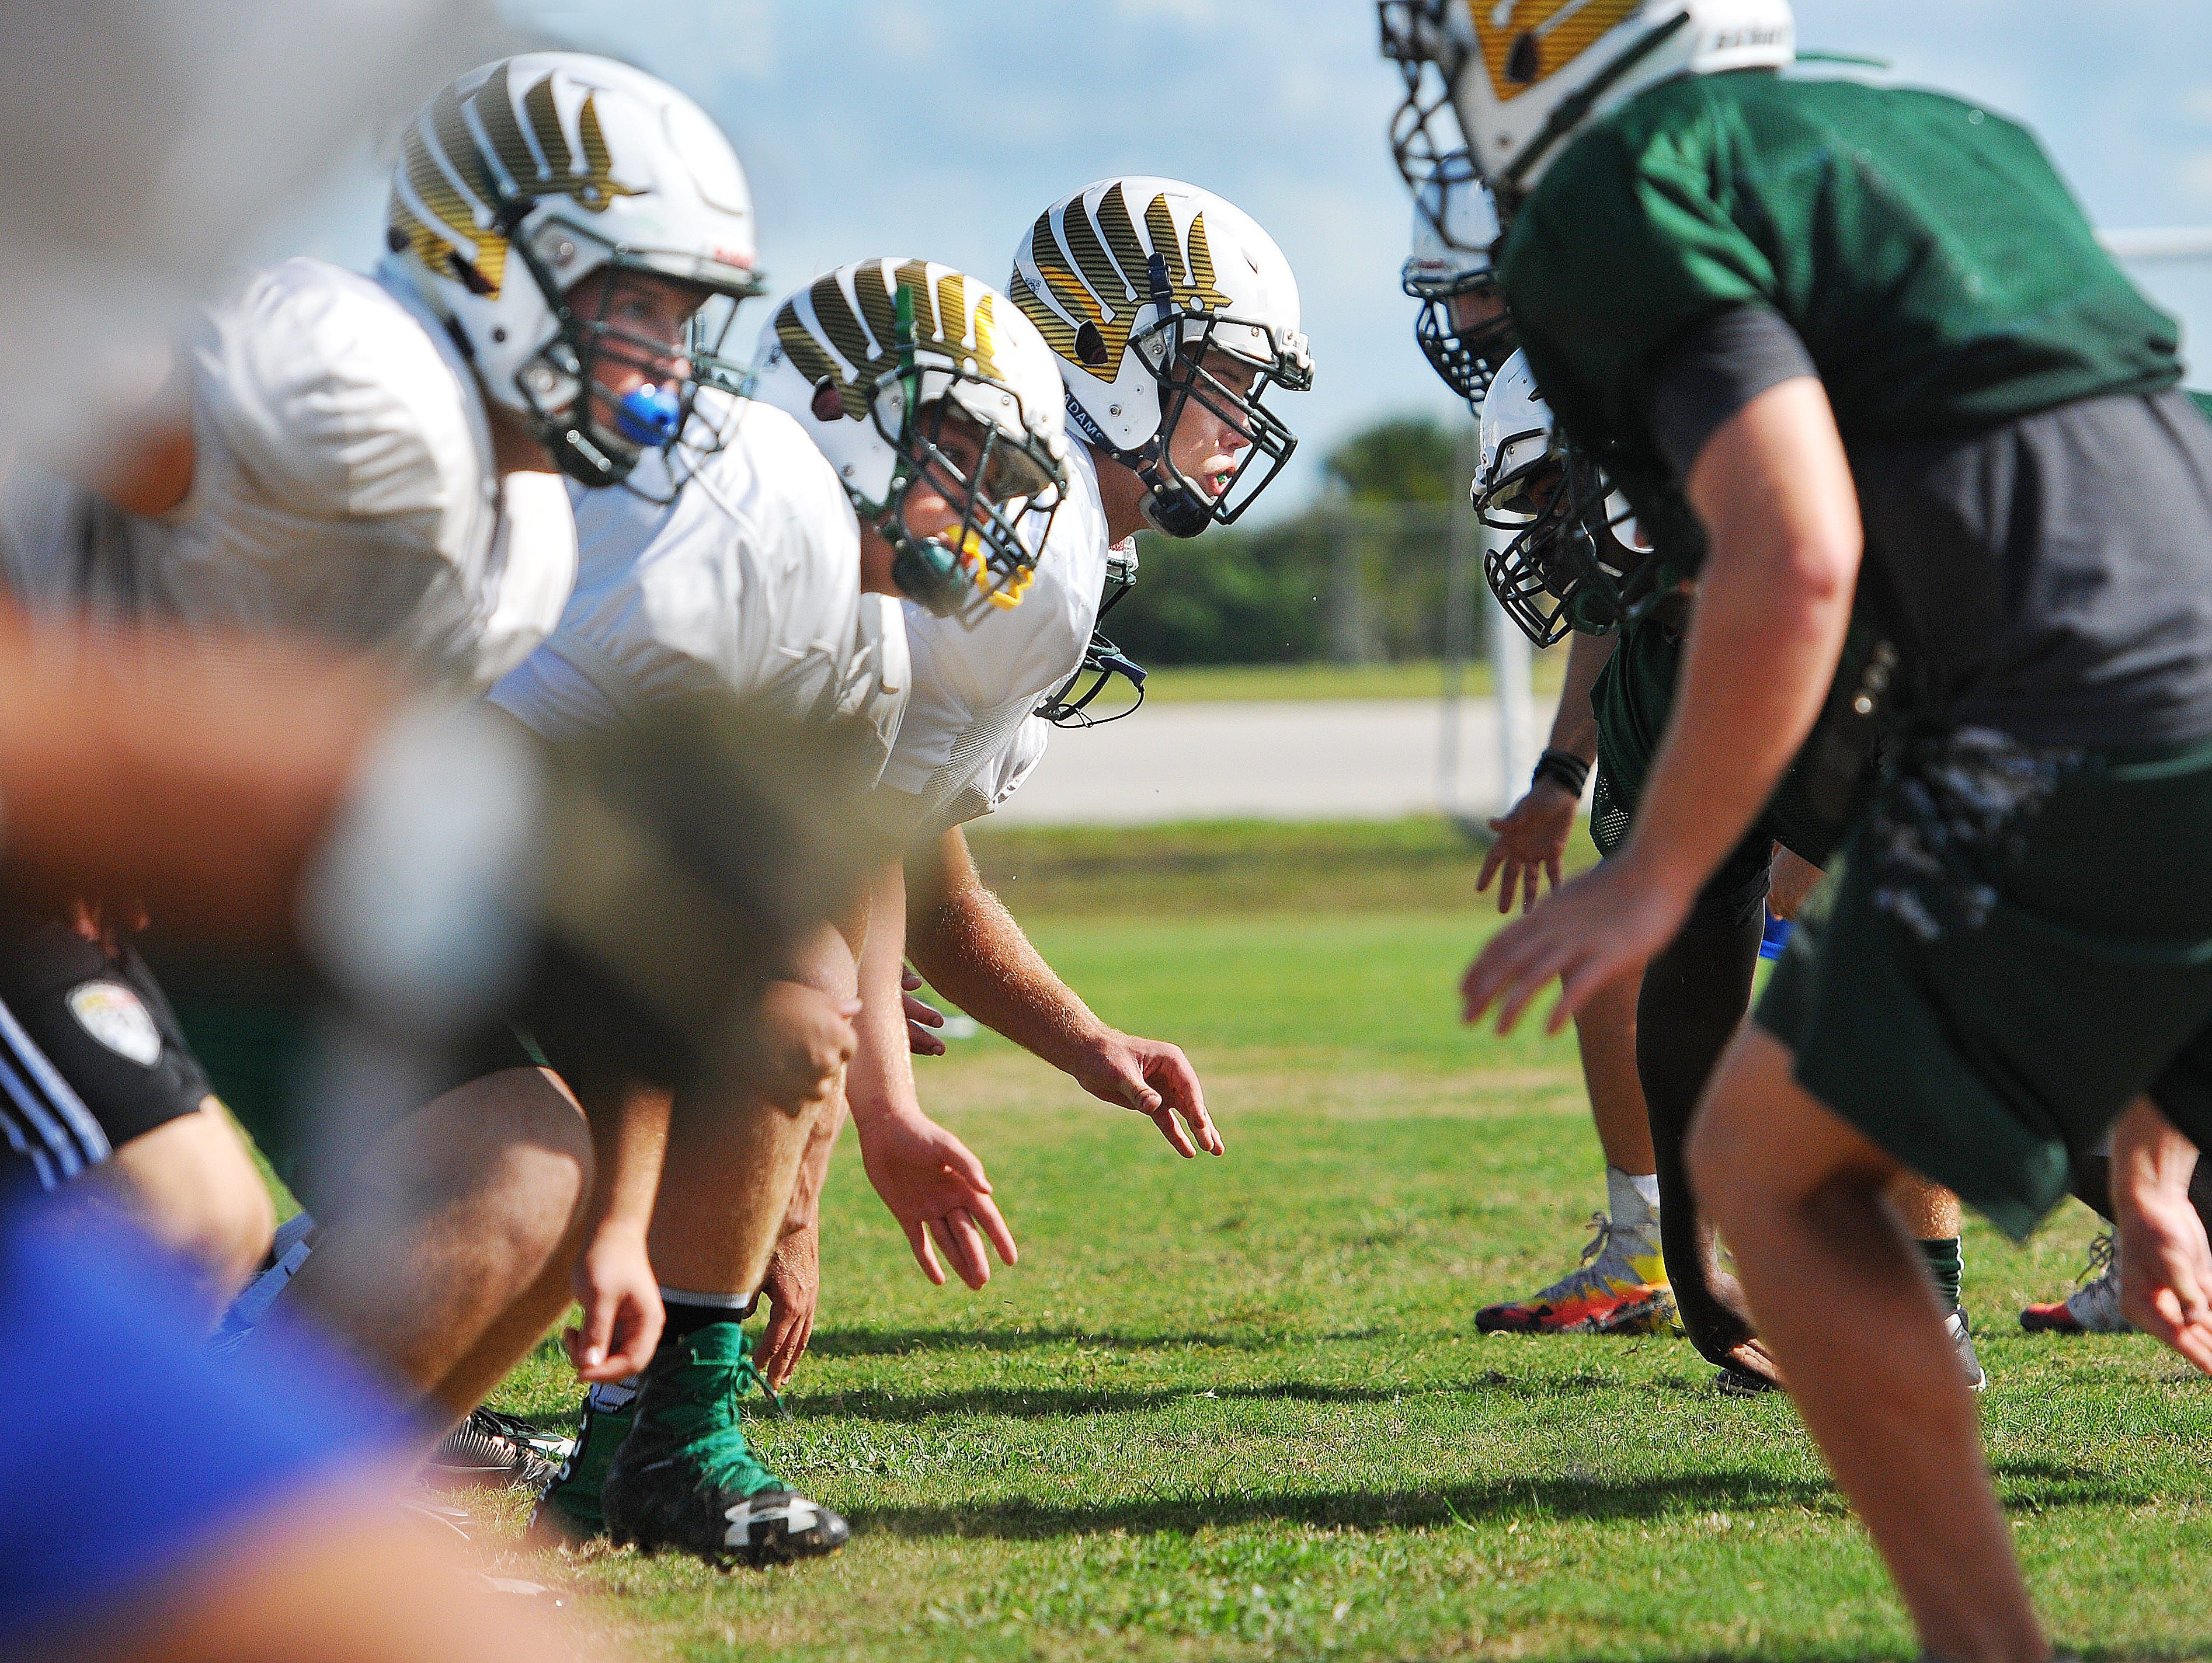 Viera High players and coach go over some offensive and defensive plays during Monday's practice as they get ready for the upcoming season.